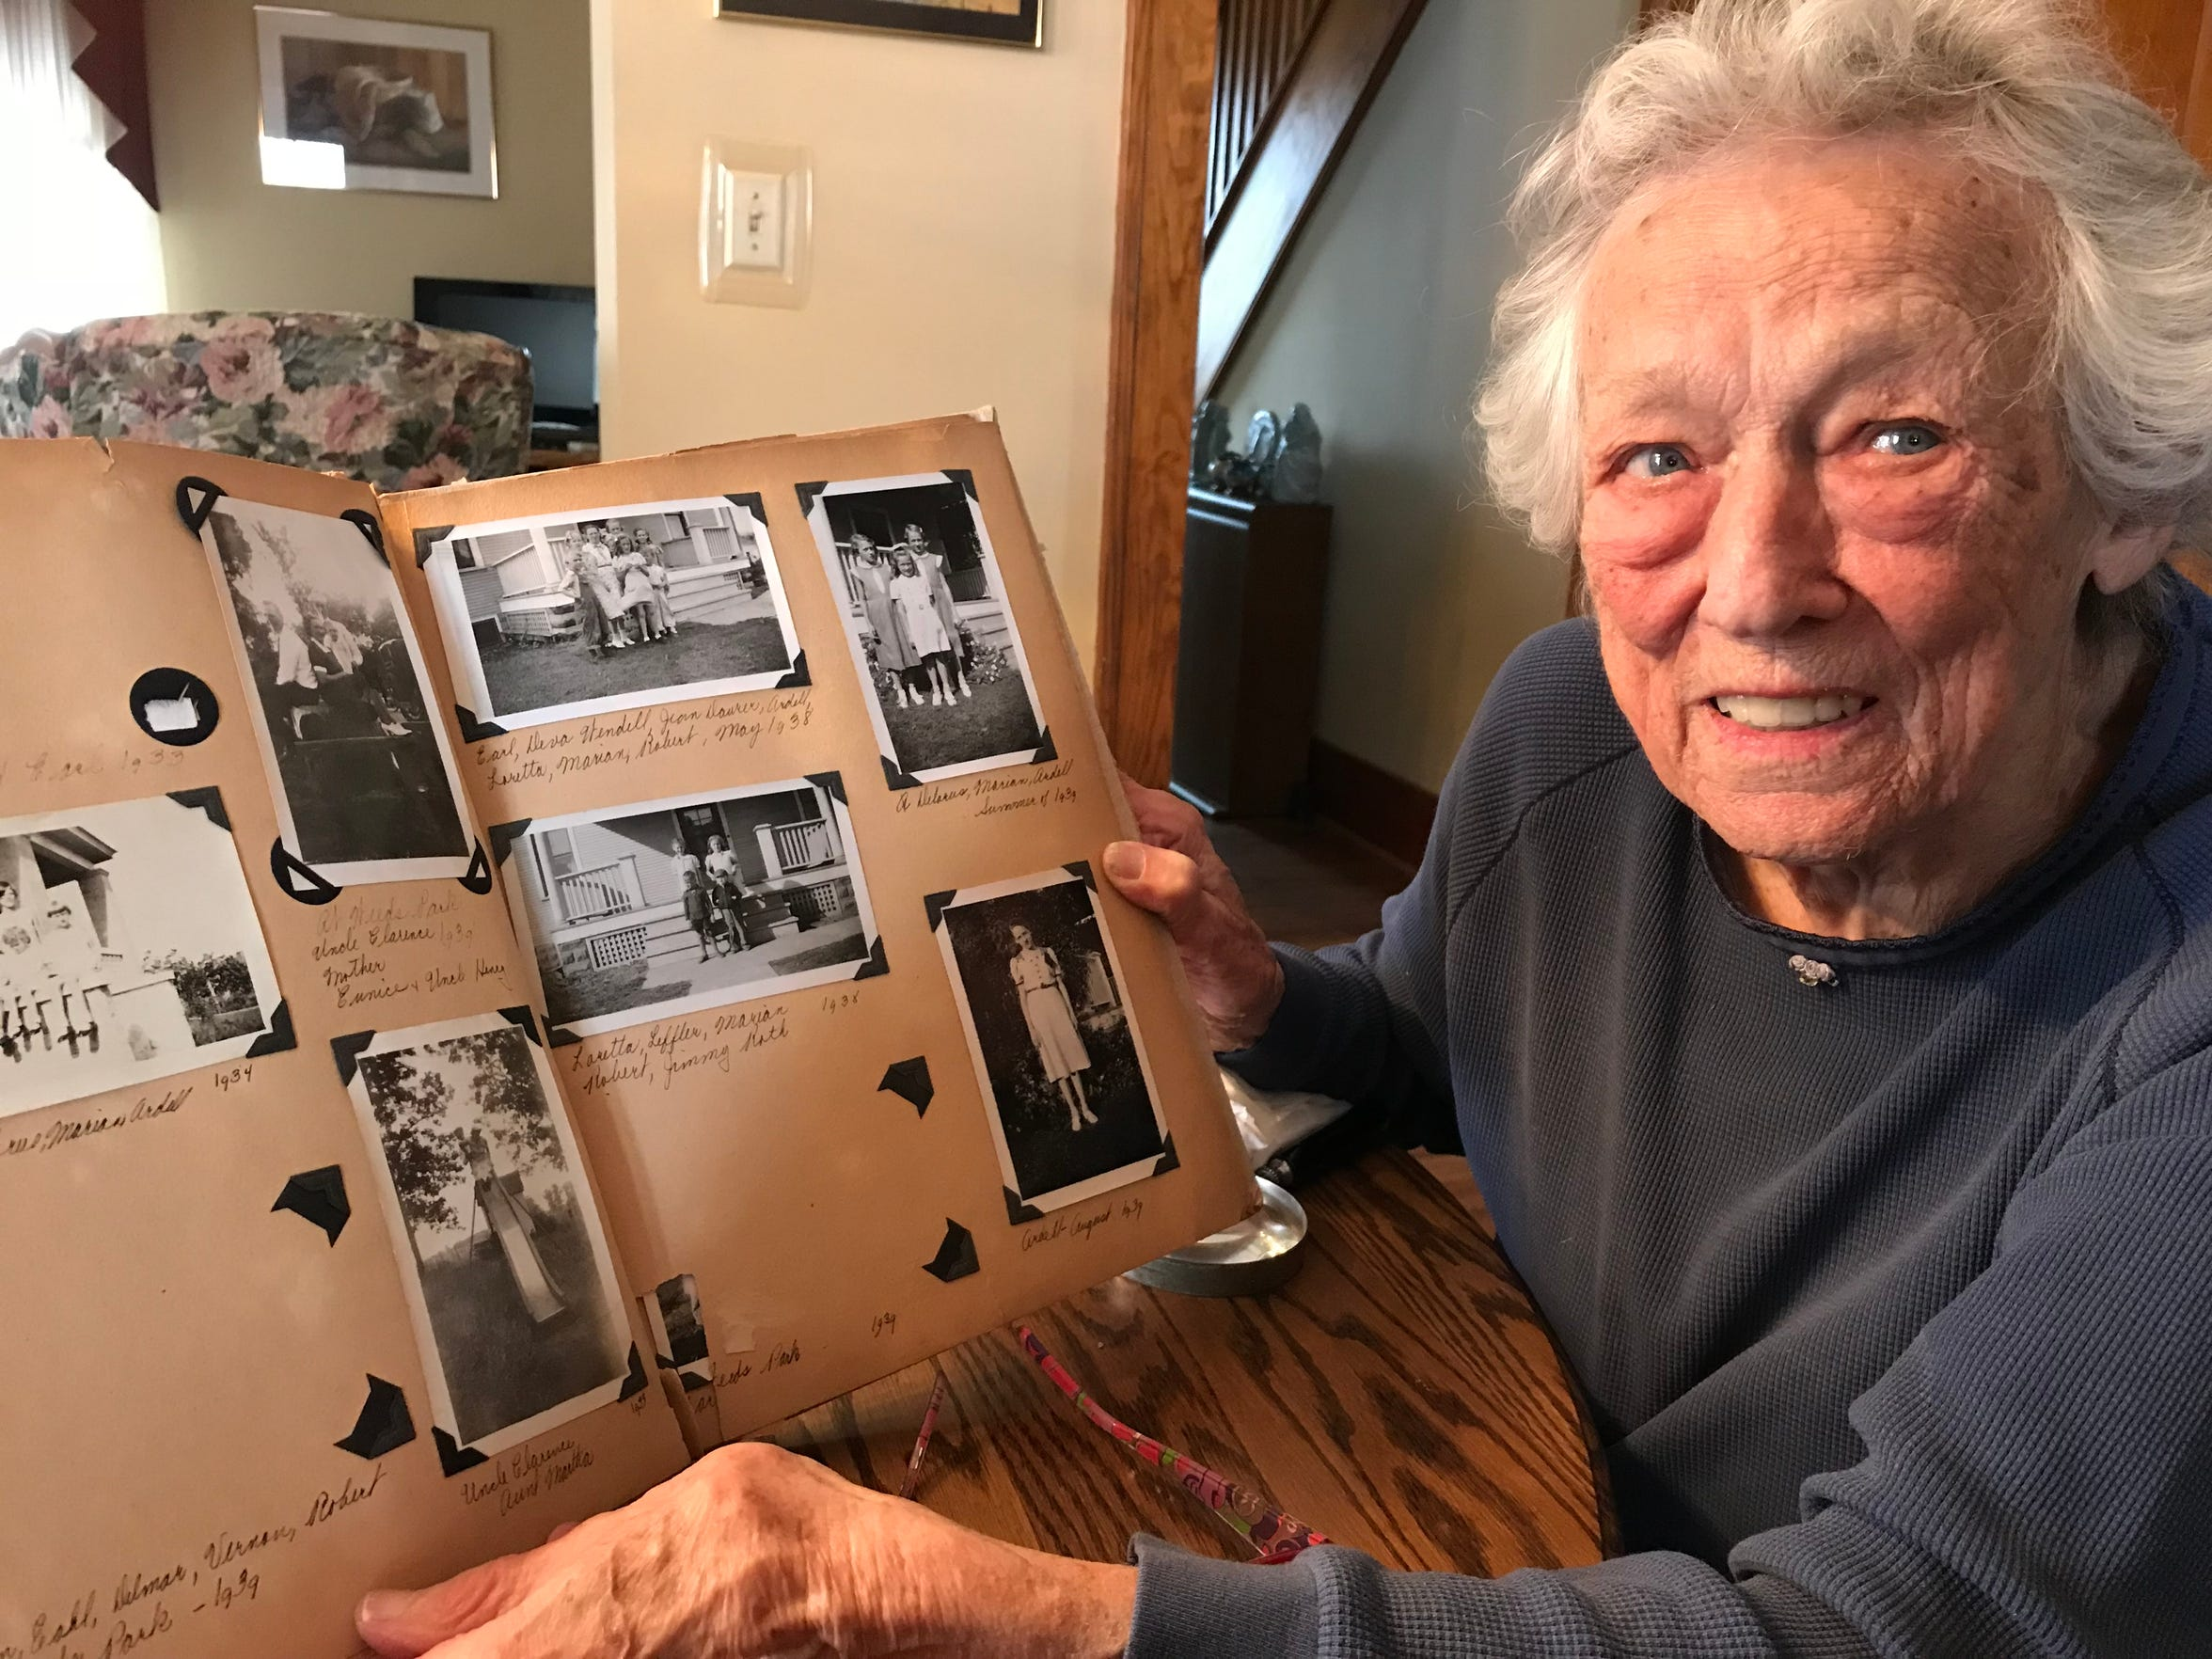 Marian Meyer with a photo album showing pictures of James Roth as a child.